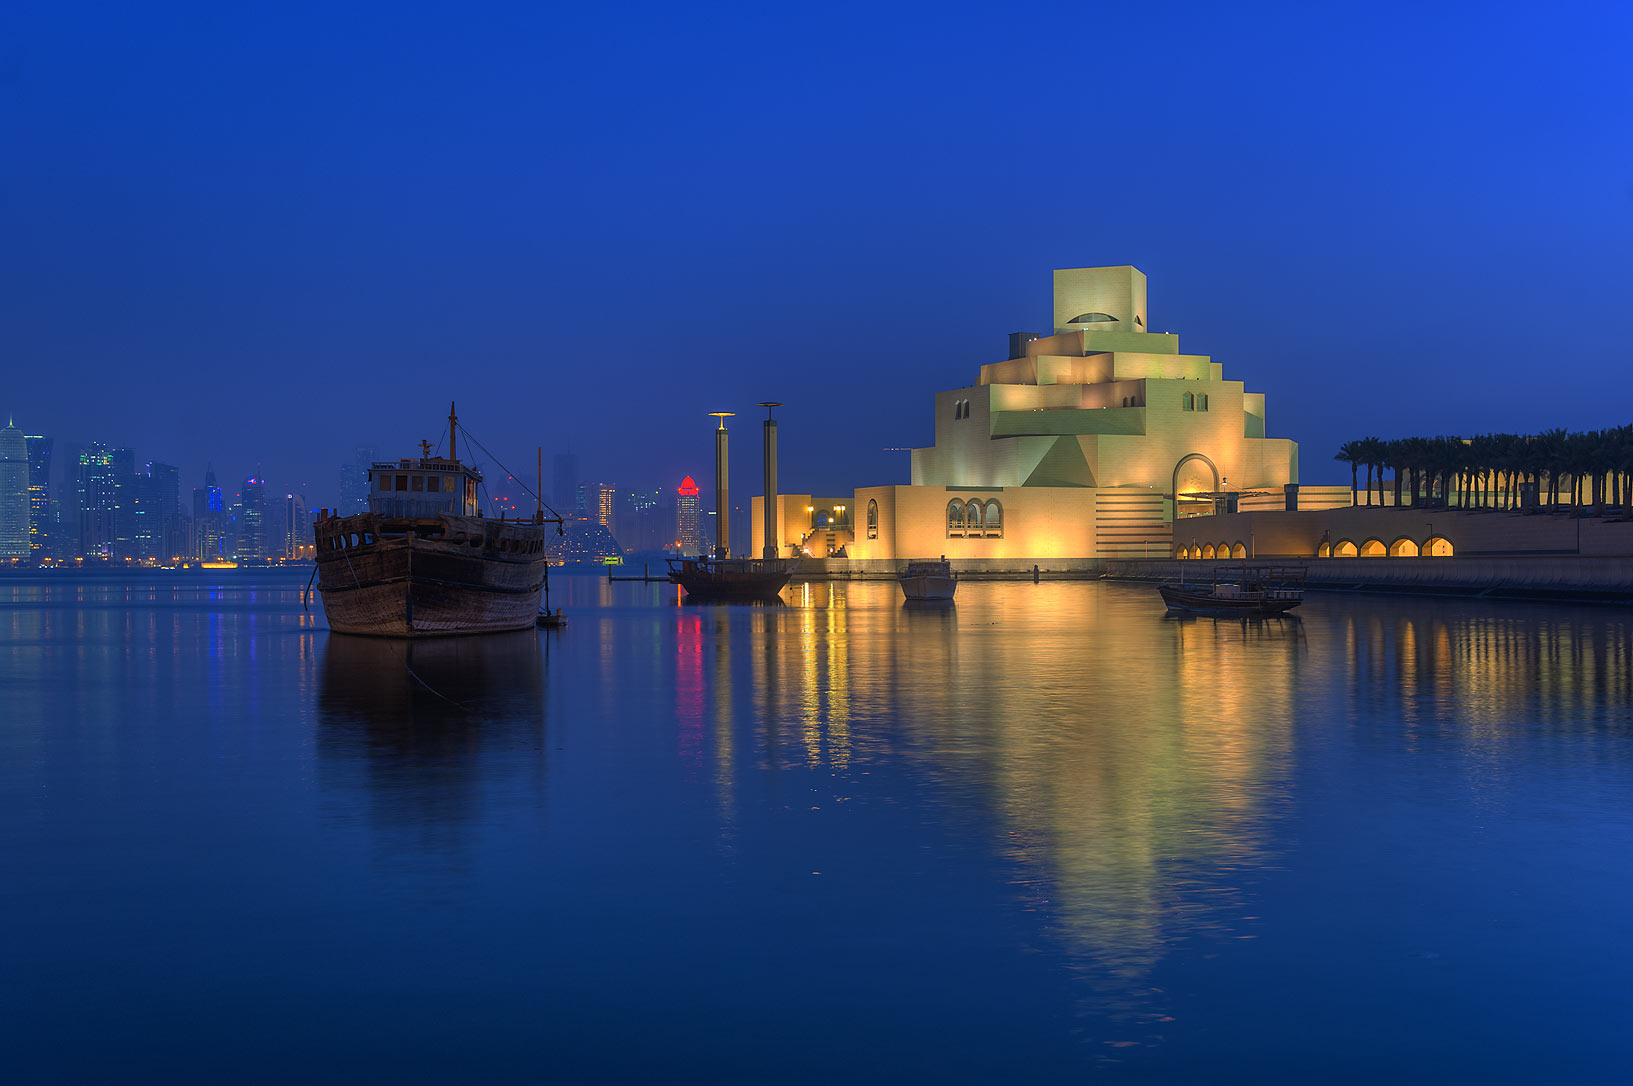 Museum of Islamic Art with a boat, view from Corniche. Doha, Qatar